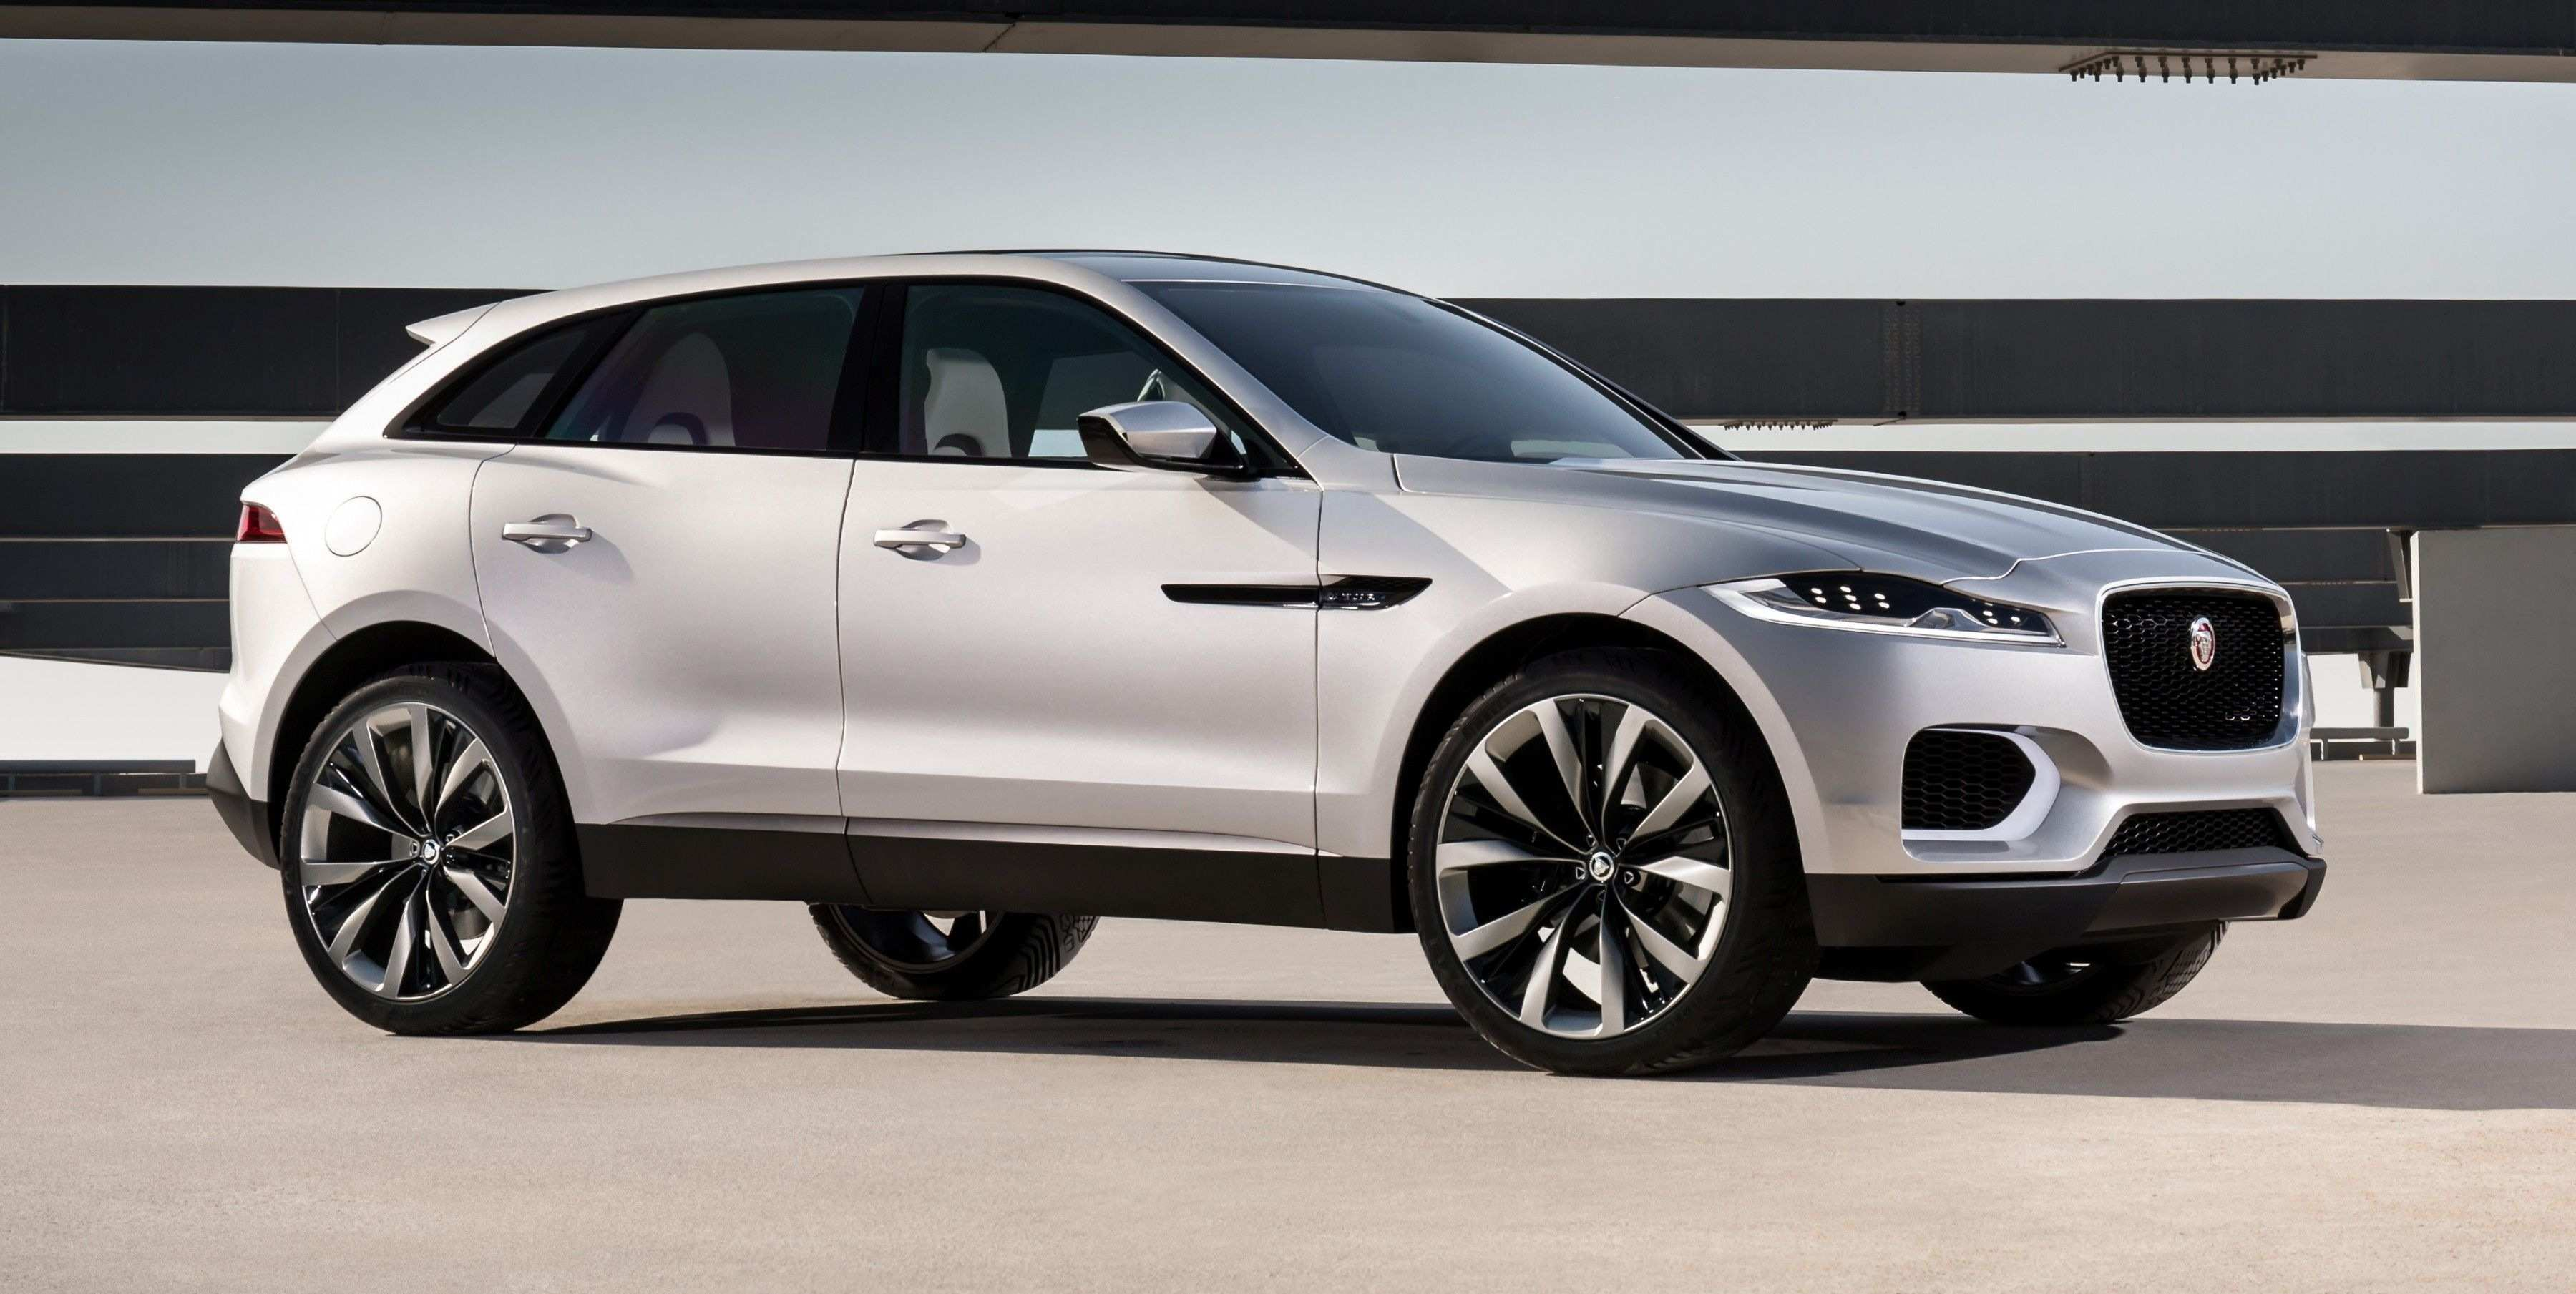 73 The Best 2020 Jaguar Xq Crossover Picture